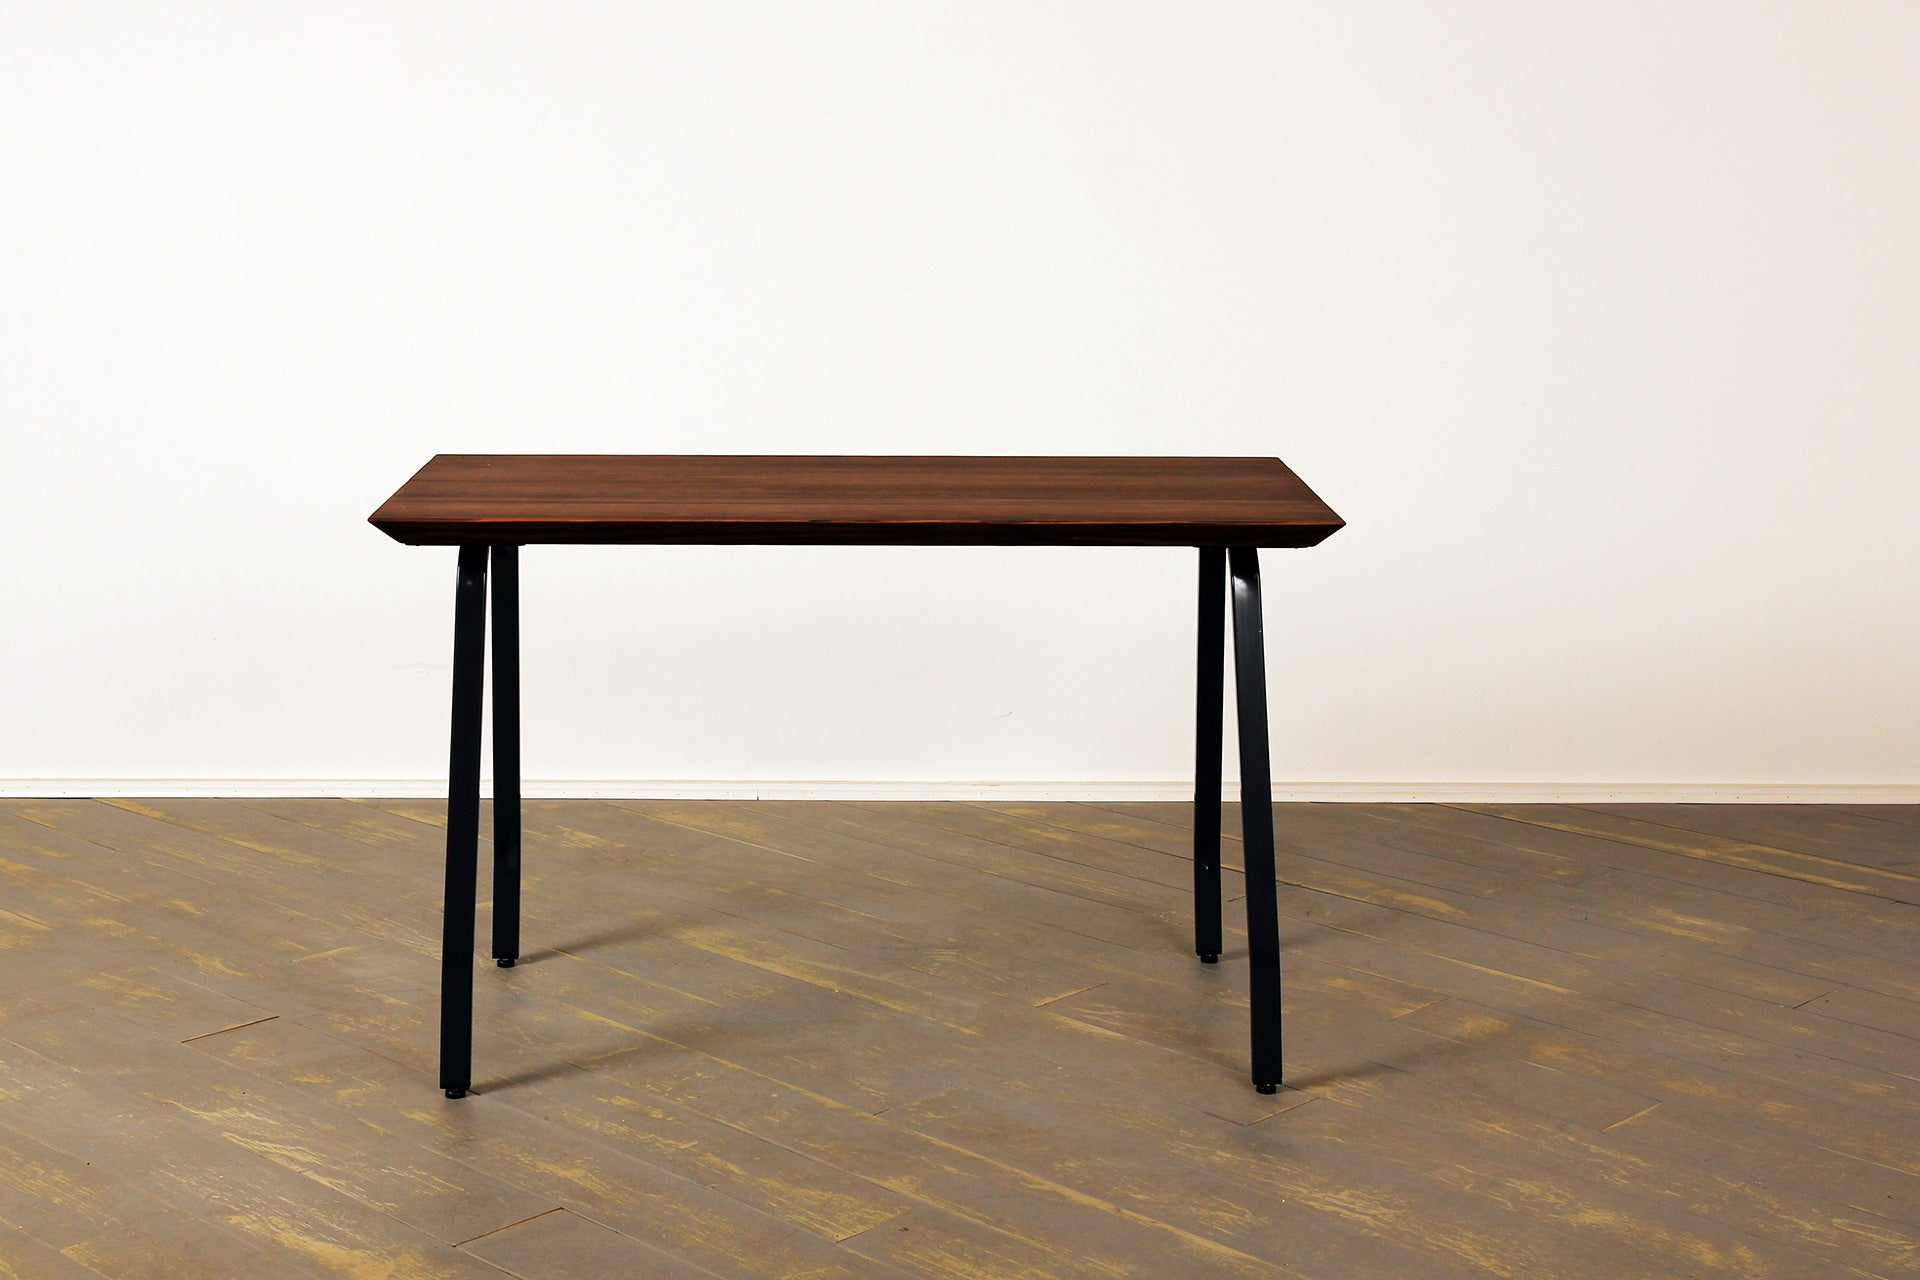 The Arthropod Bevel Desk in Warm Brown and Clear Coat